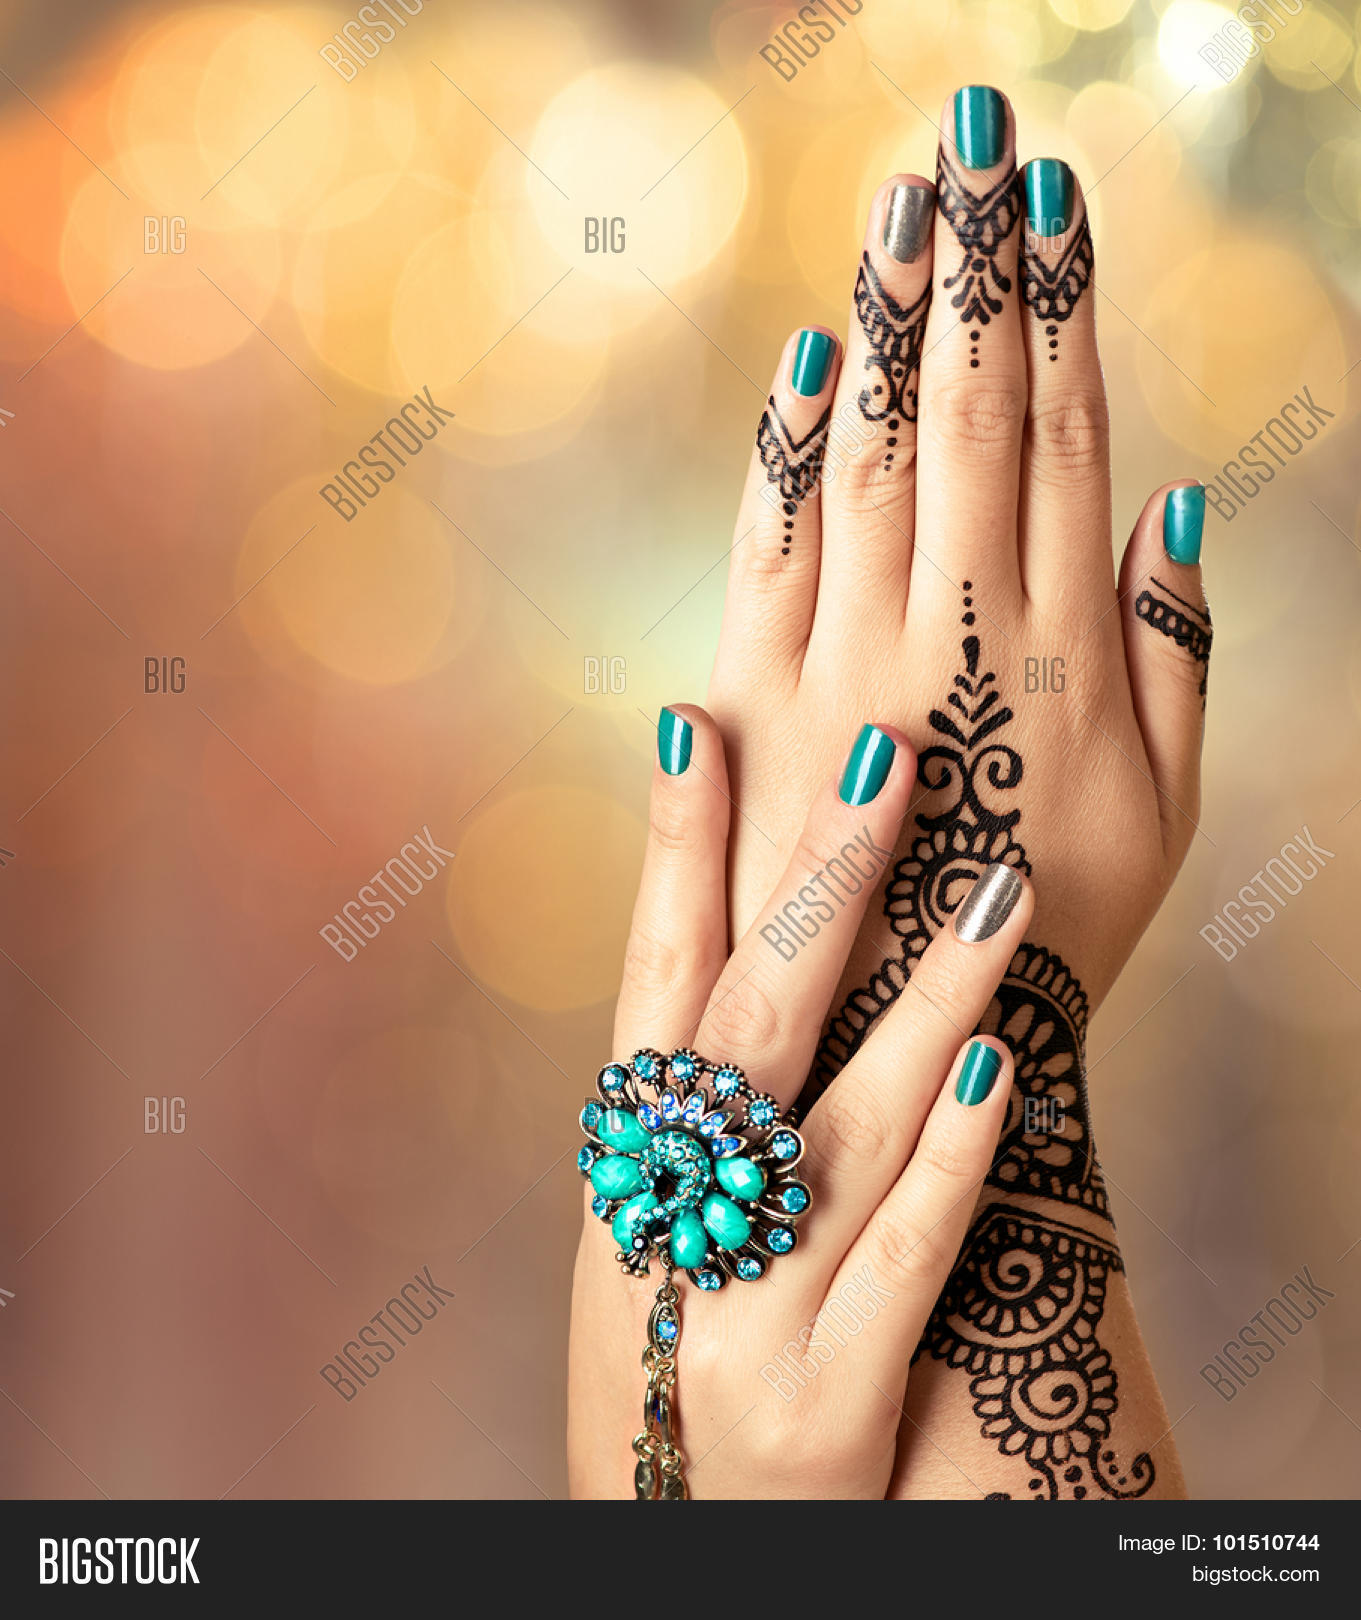 3a9d85def8ef0 Woman Hands with black mehndi tattoo. Hands of Indian bride girl with black henna  tattoos